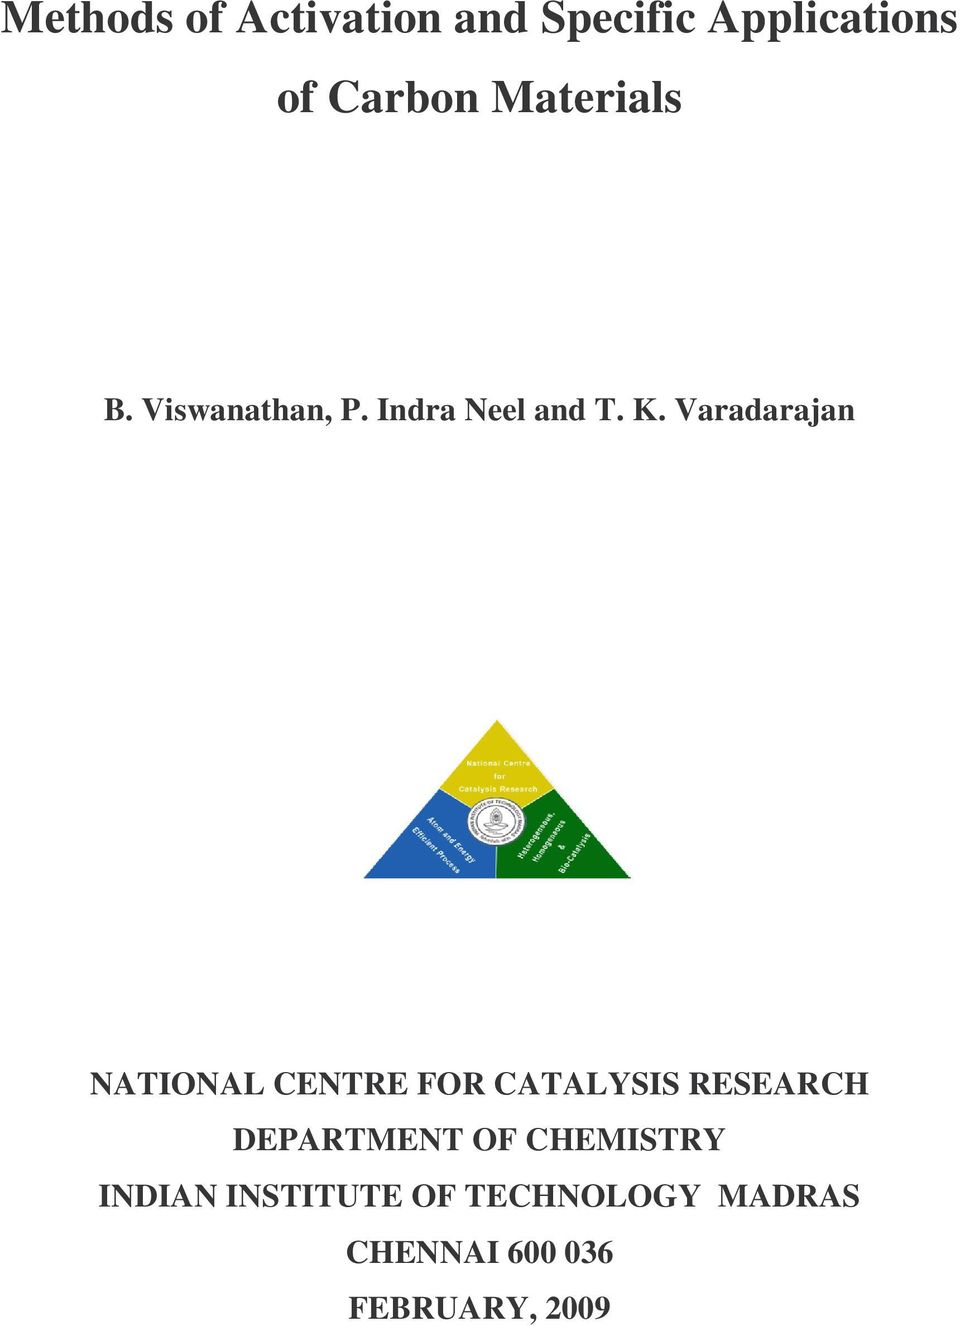 Varadarajan NATIONAL CENTRE FOR CATALYSIS RESEARCH DEPARTMENT